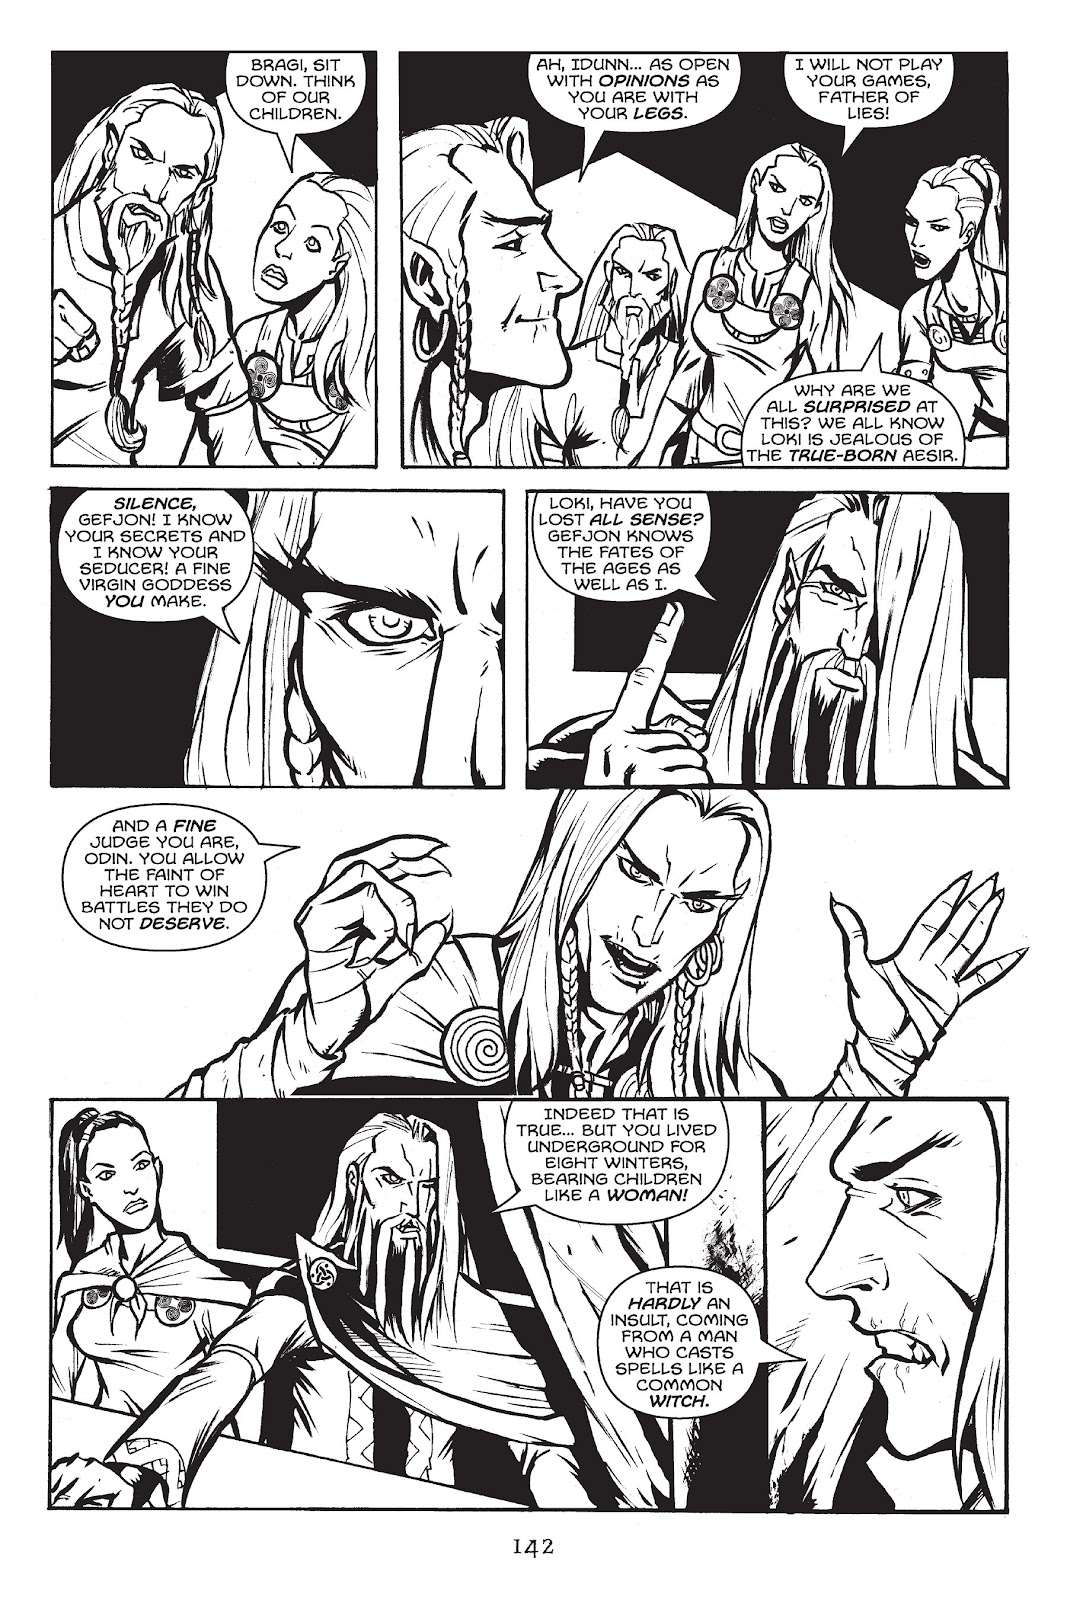 Read online Gods of Asgard comic -  Issue # TPB (Part 2) - 44